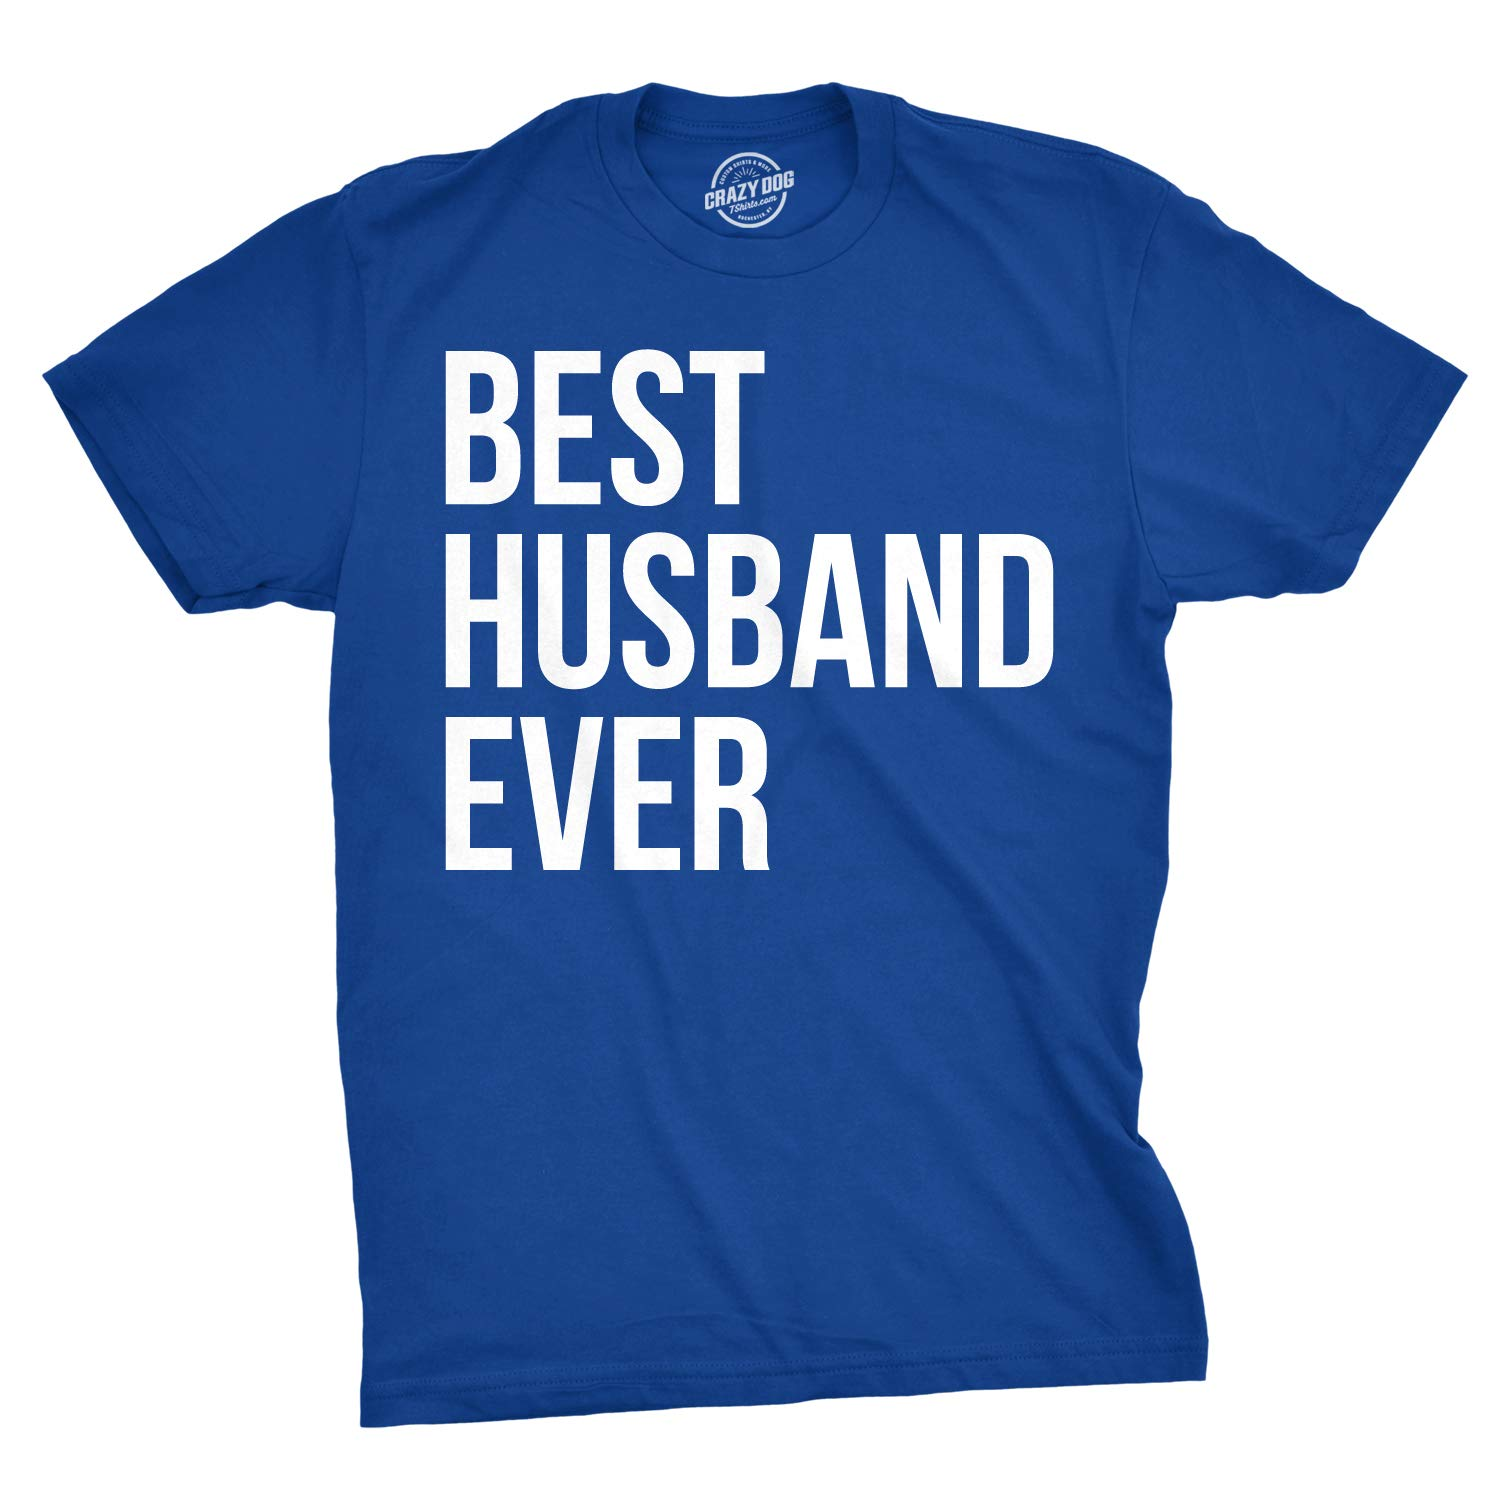 dad16ac72 Mens Best Husband Ever T shirt Funny T shirts for Dad Fathers Day Gift  Sarcasm W: Amazon.ca: Sports & Outdoors